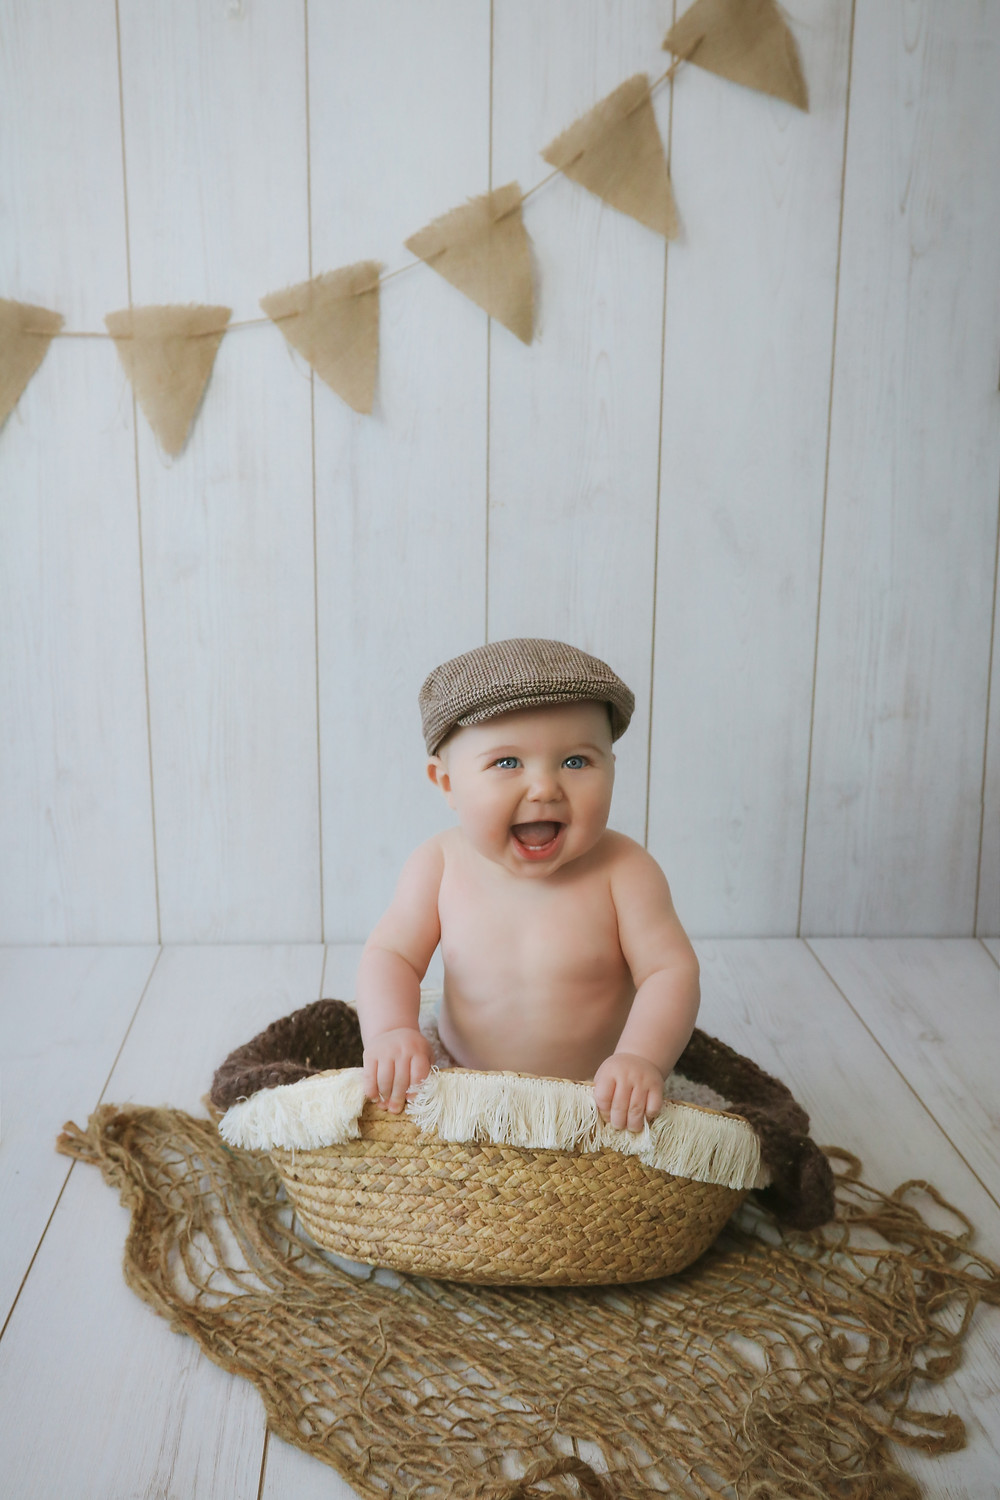 baby boy sitting up in basket laughing wearing flat cap